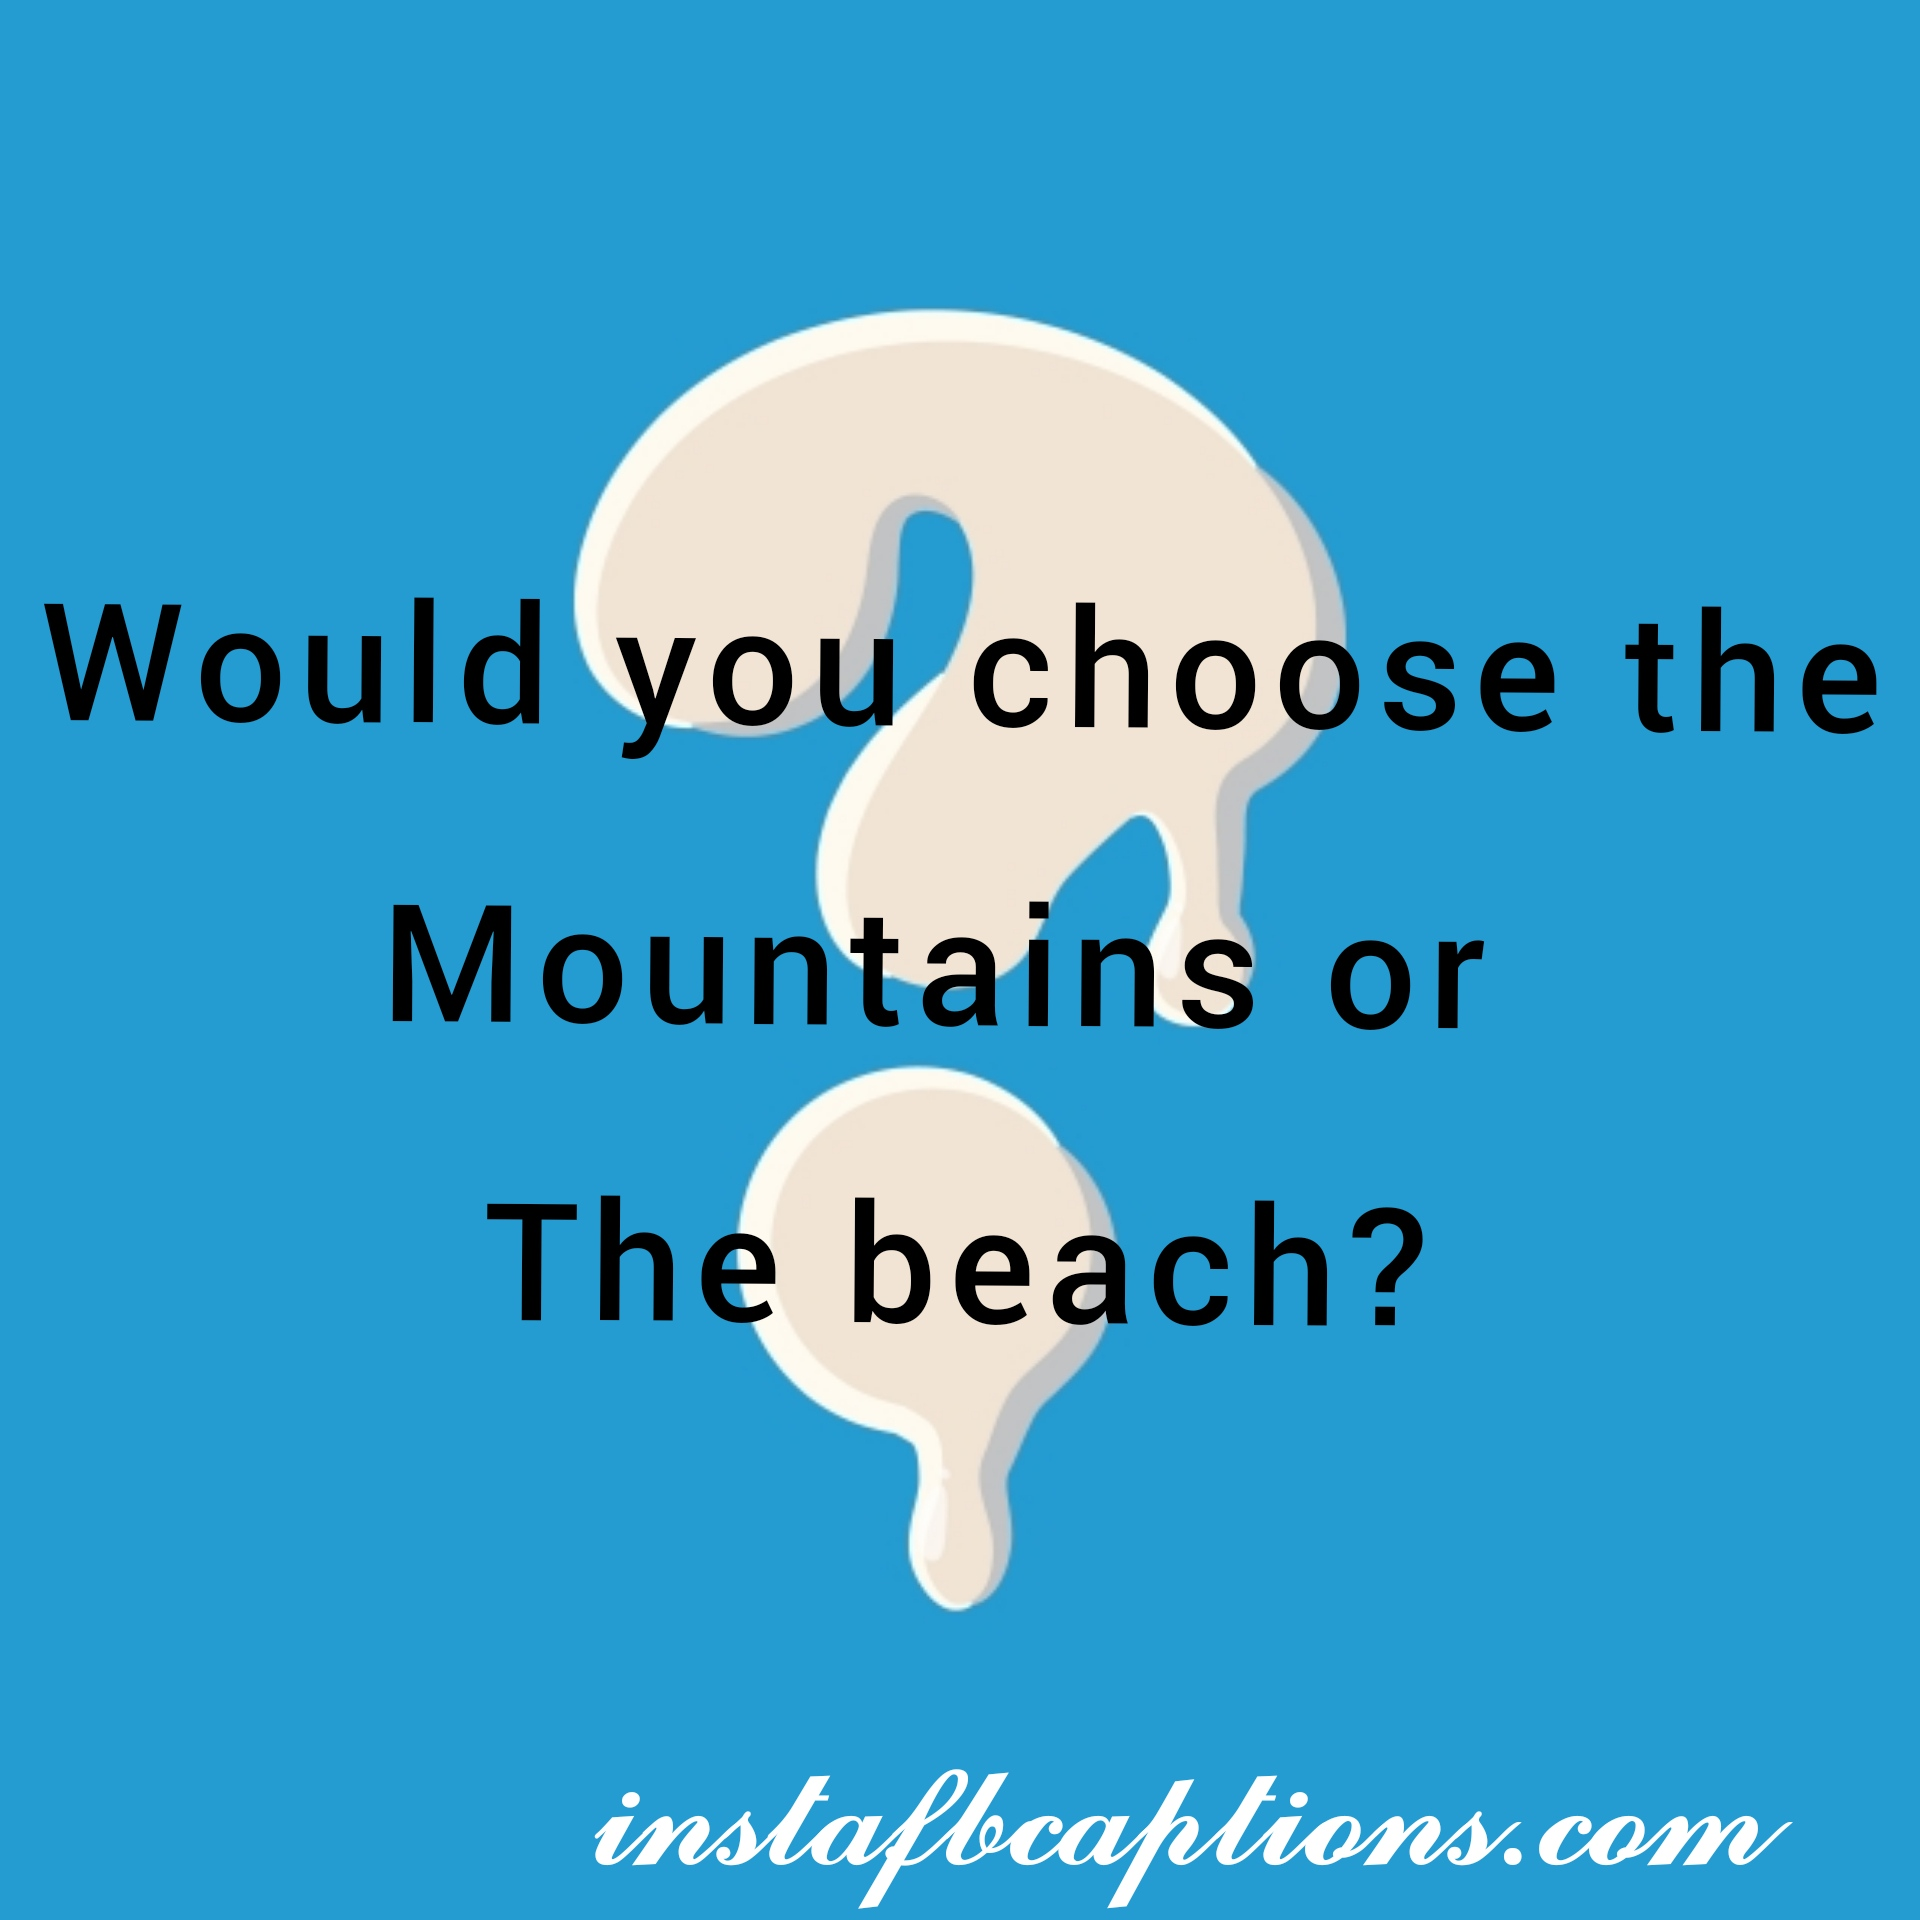 Would You Choose The Mountains Or The Beach  - would you choose the mountains or the beach - 100+ Short QUESTION Instagram captions 2021